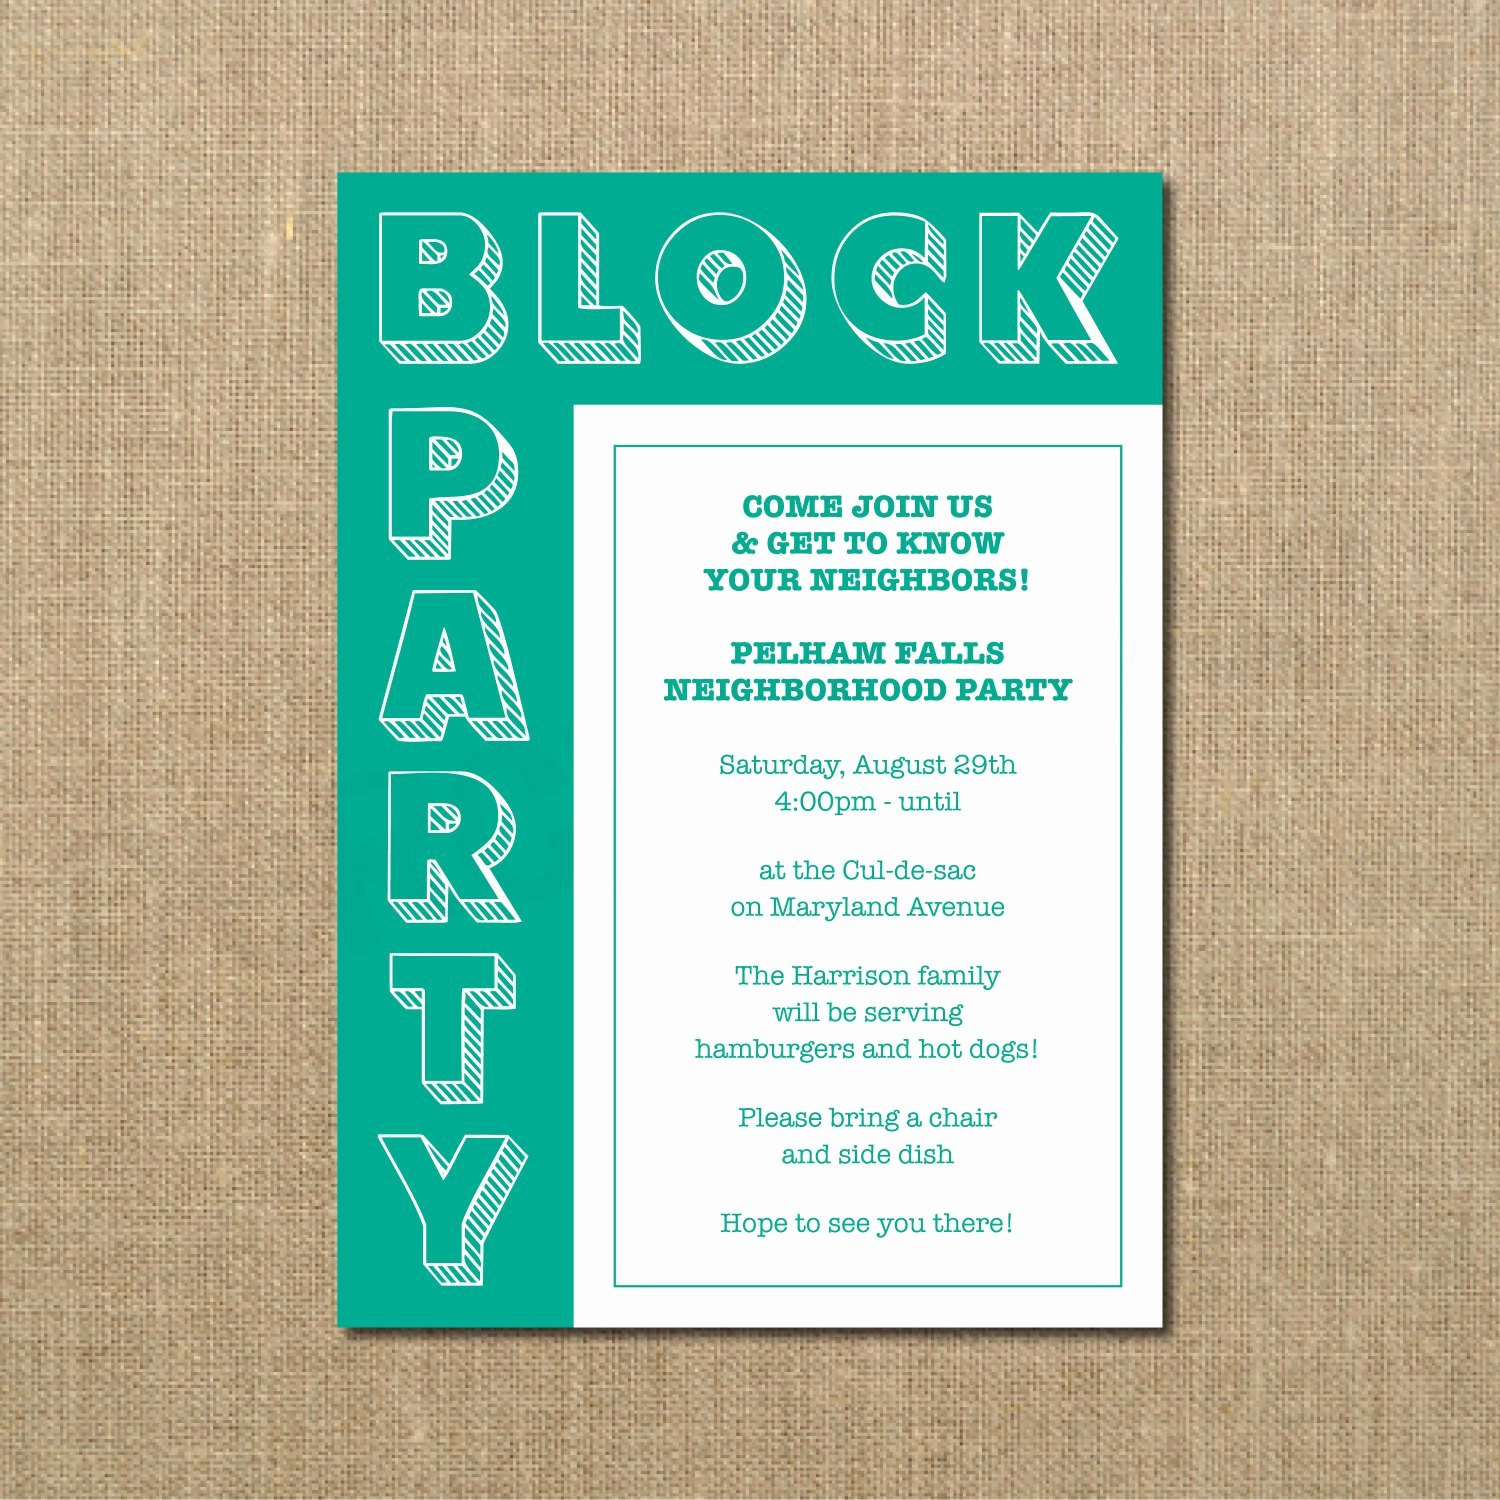 Block Party Invite Template Awesome Neighborhood Block Party Cookout Invitation Grilling Out